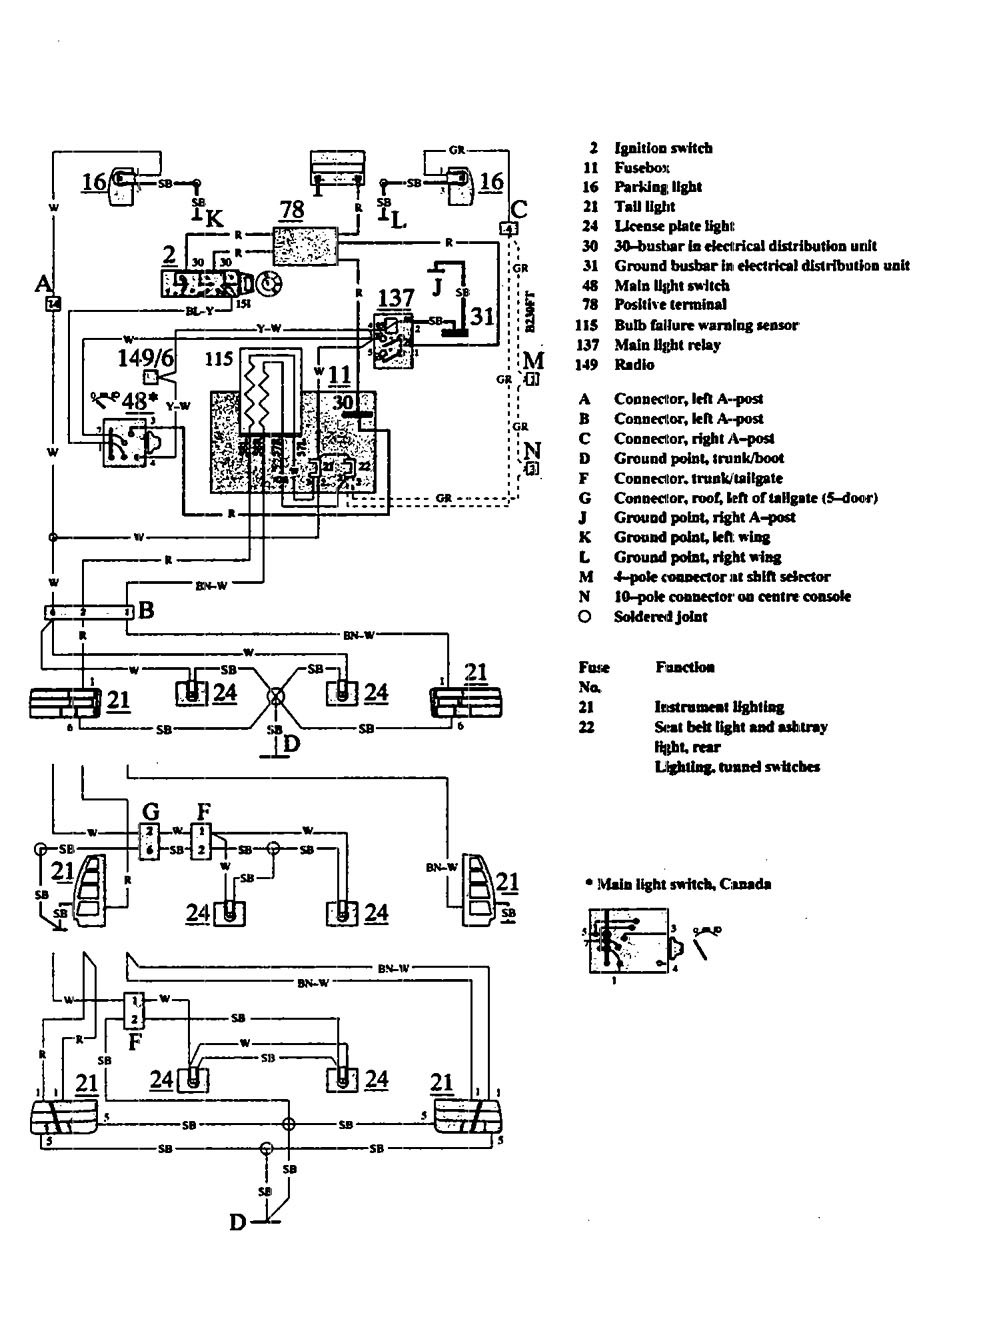 volvo s40 fuse panel diagram  volvo  auto fuse box diagram